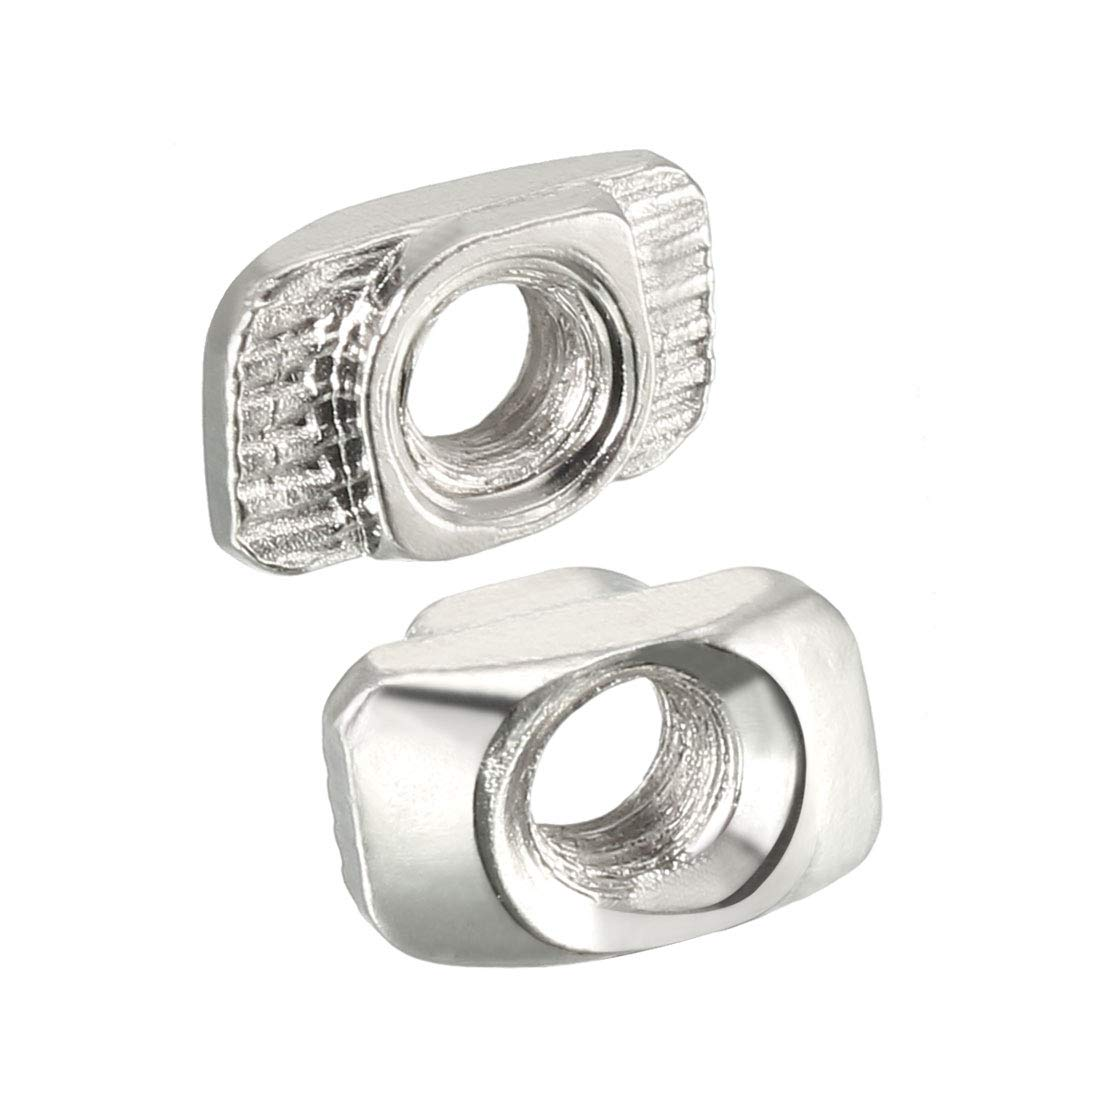 uxcell Sliding T Slot Nuts Carbon Steel Nickel-Plated Pack of 10 M5 Half Round Roll in T-Nut for 3030 Series Aluminum Extrusion Profile